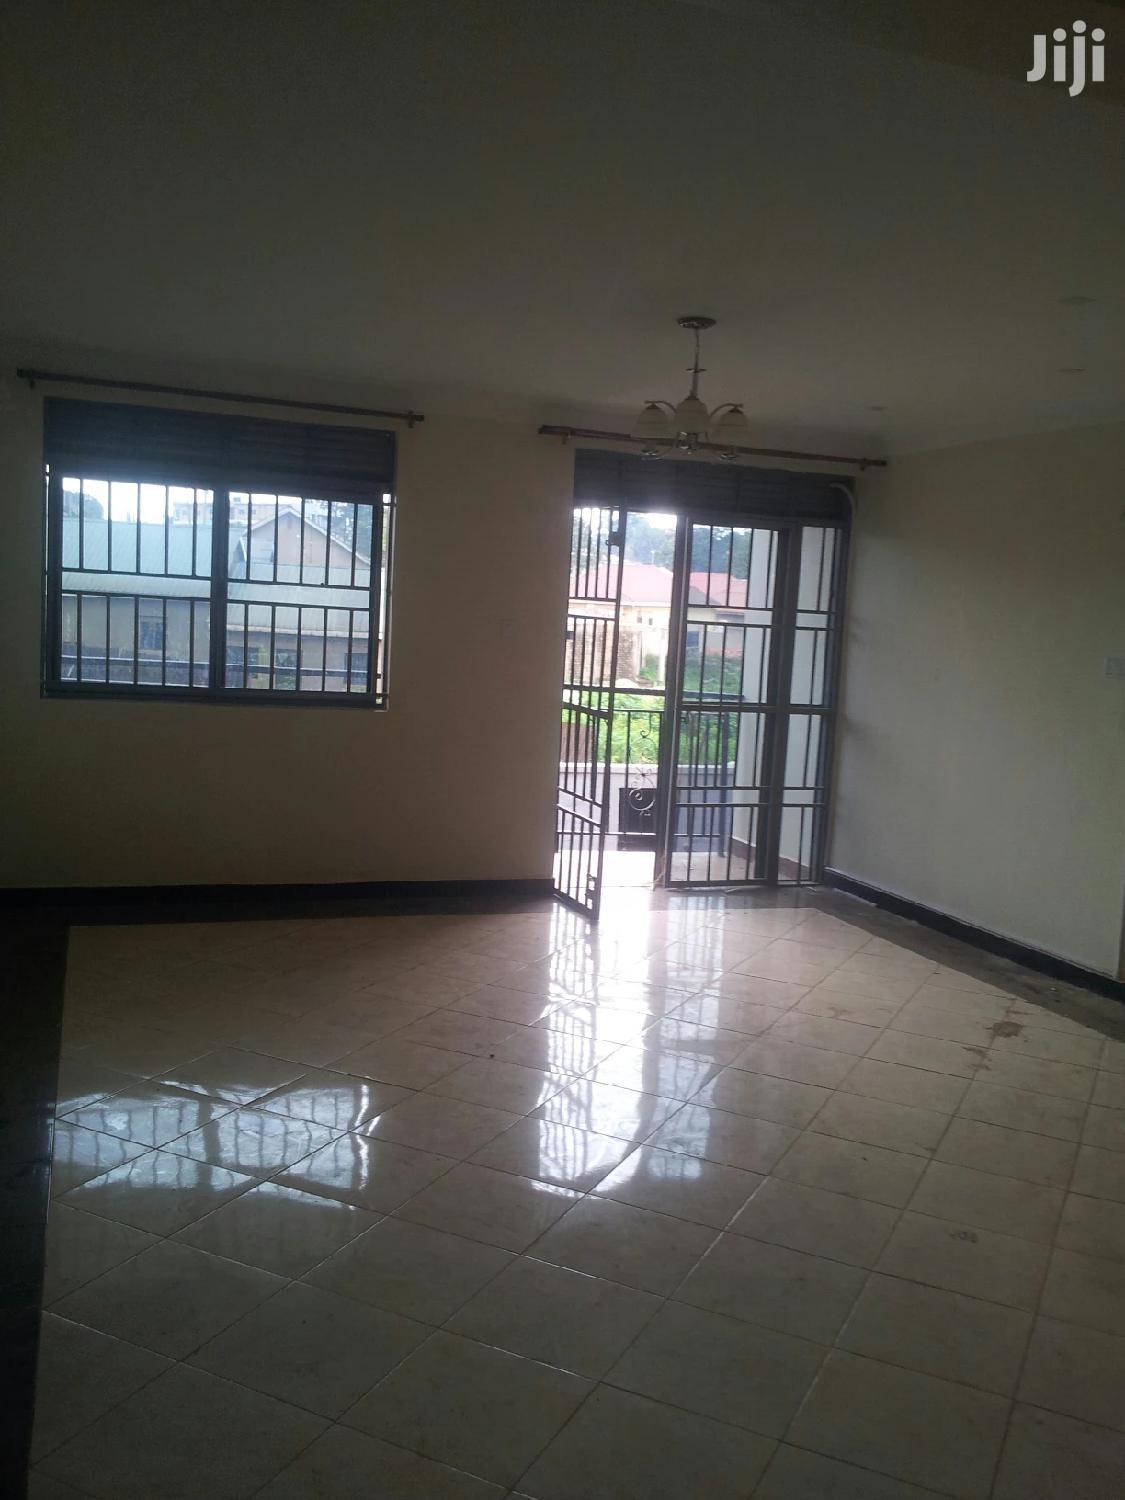 2 Bedroom Apartment For Rent In Kisaasi | Houses & Apartments For Rent for sale in Kampala, Central Region, Uganda